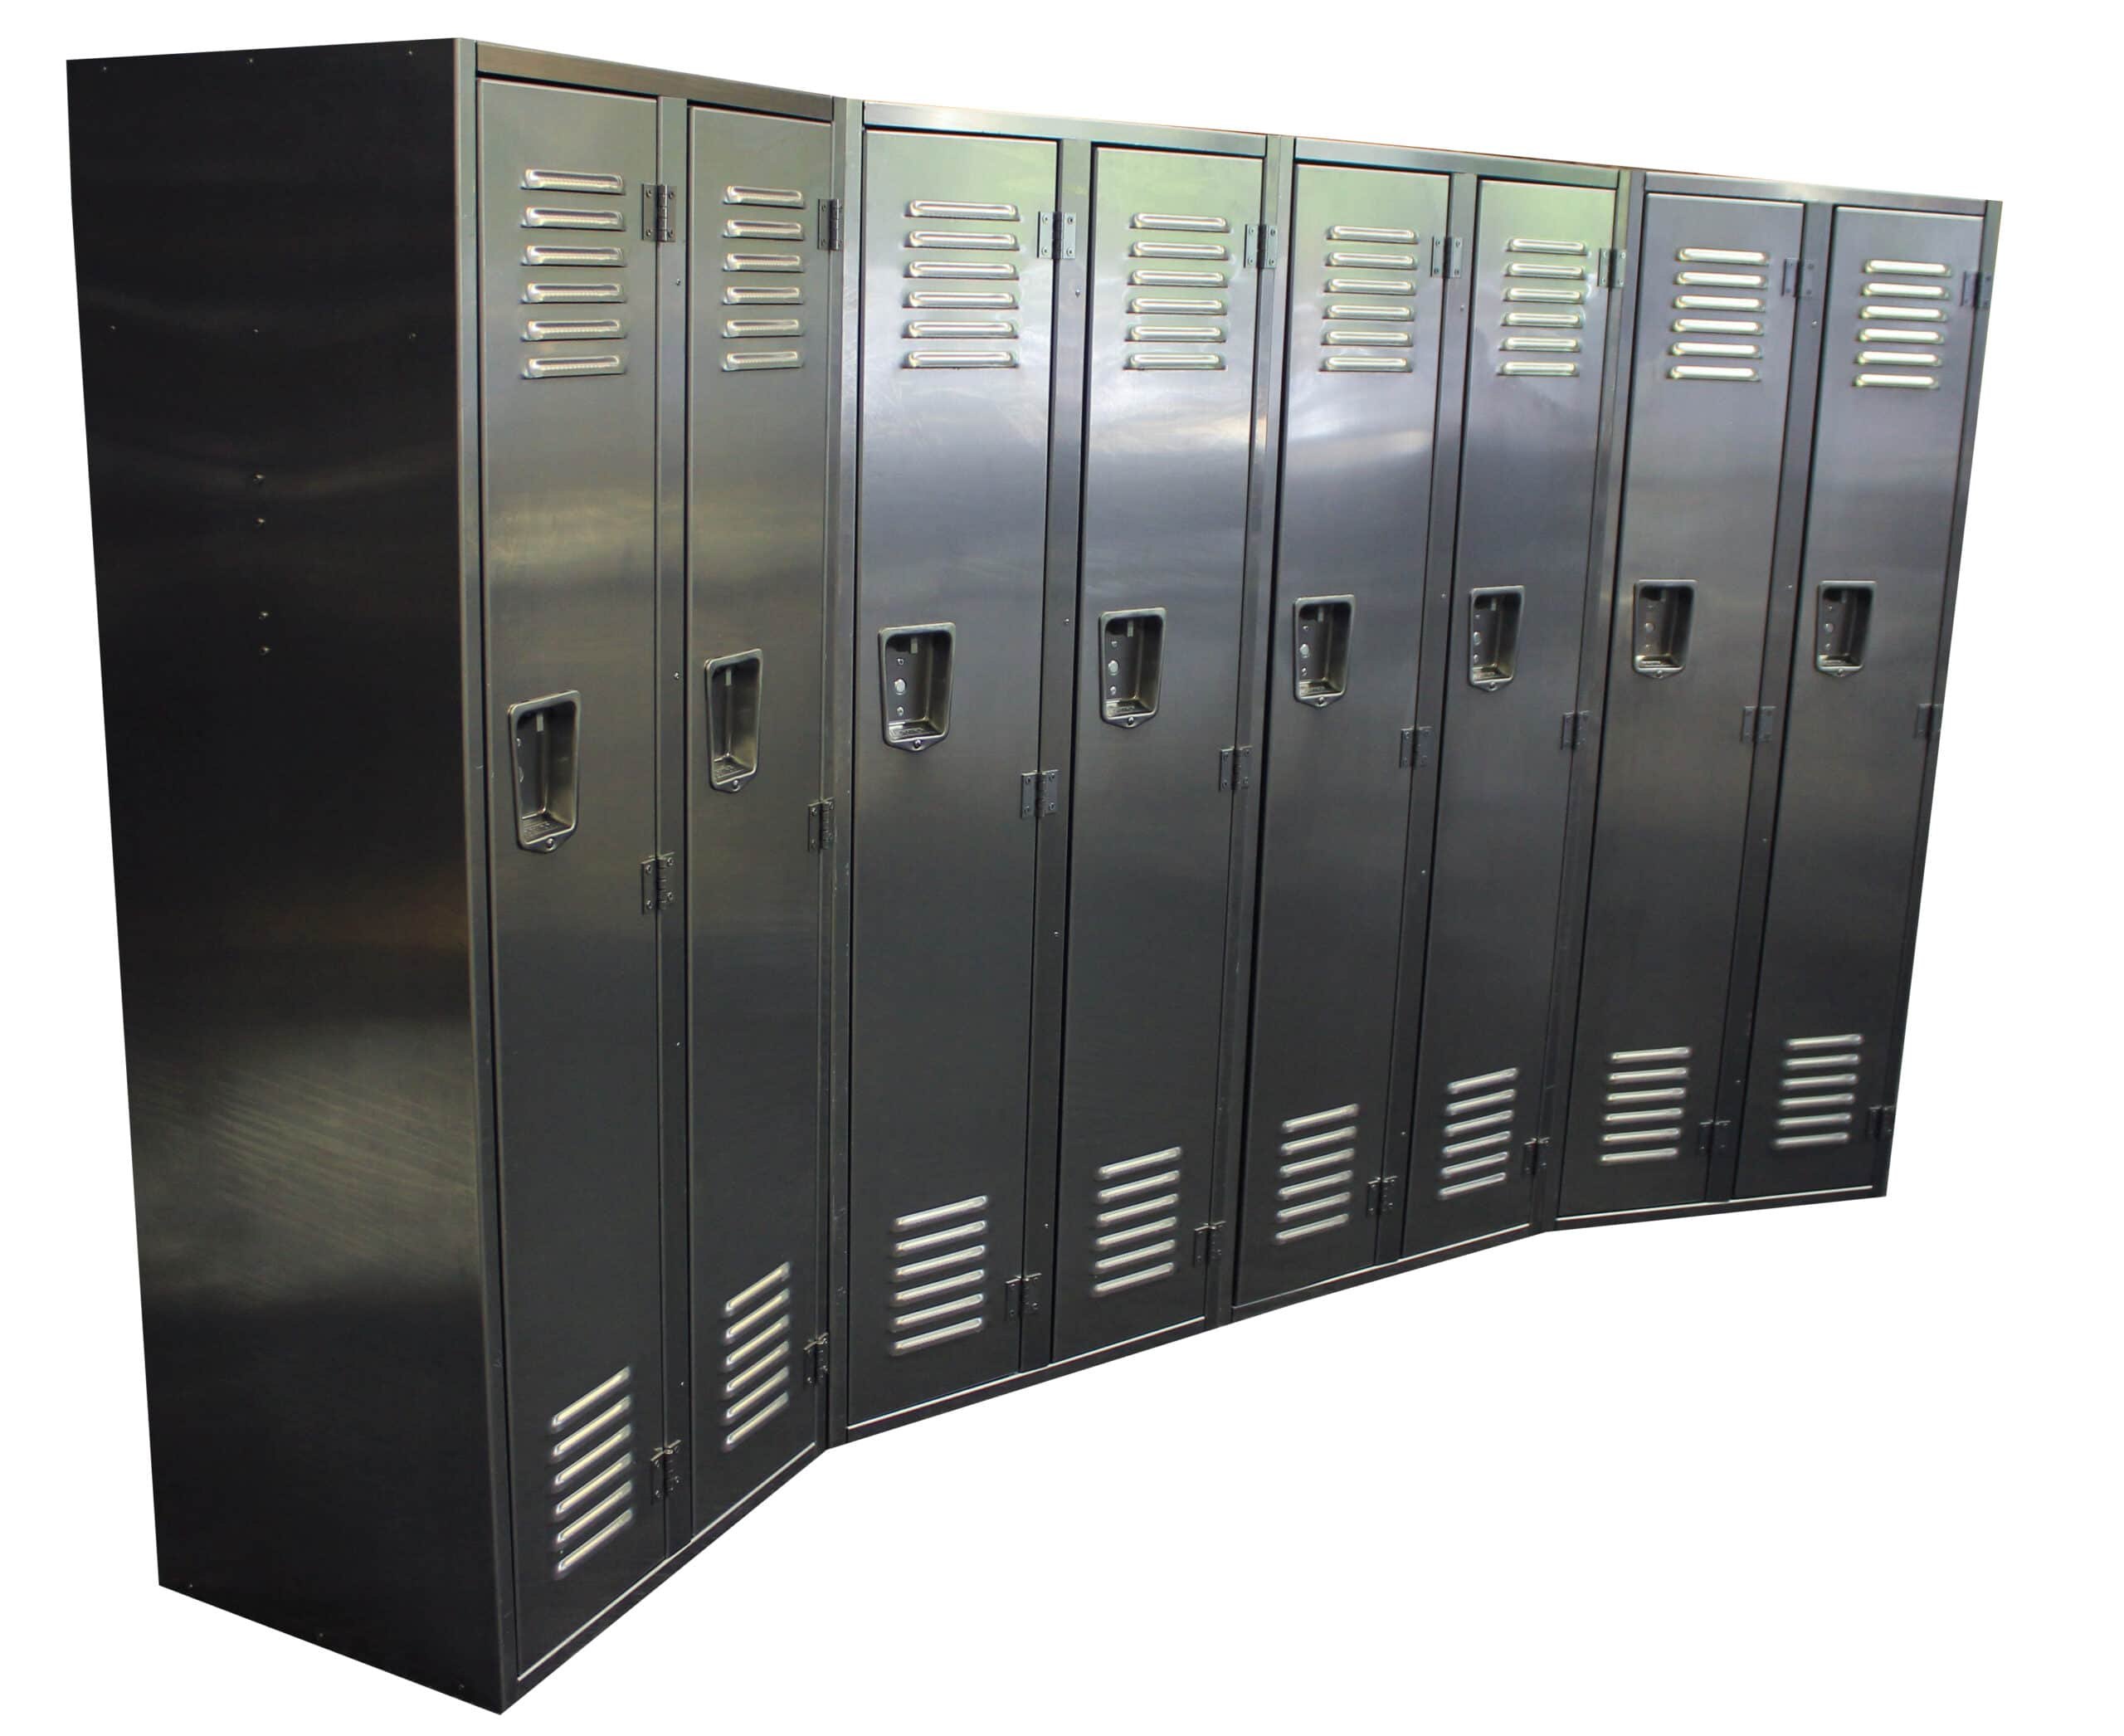 Rich results on Google's SERP when searching for 'single tier aluminum locker closed'